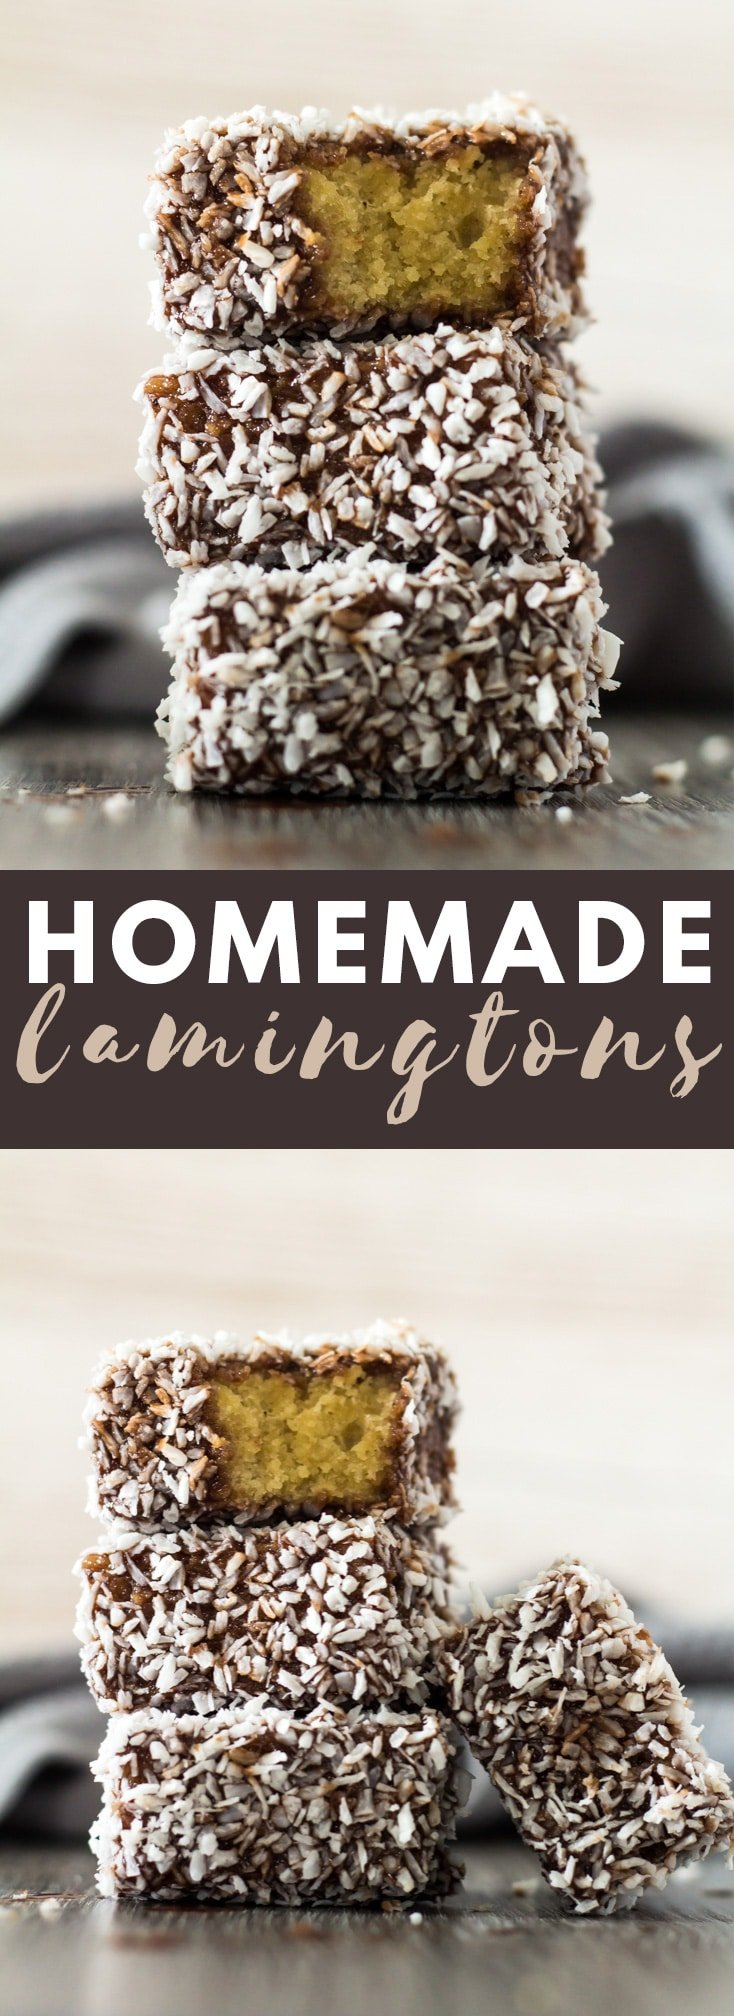 Homemade Lamingtons - Deliciously moist and fluffy squares of sponge cake coated in a layer of chocolate, and rolled in desiccated coconut!